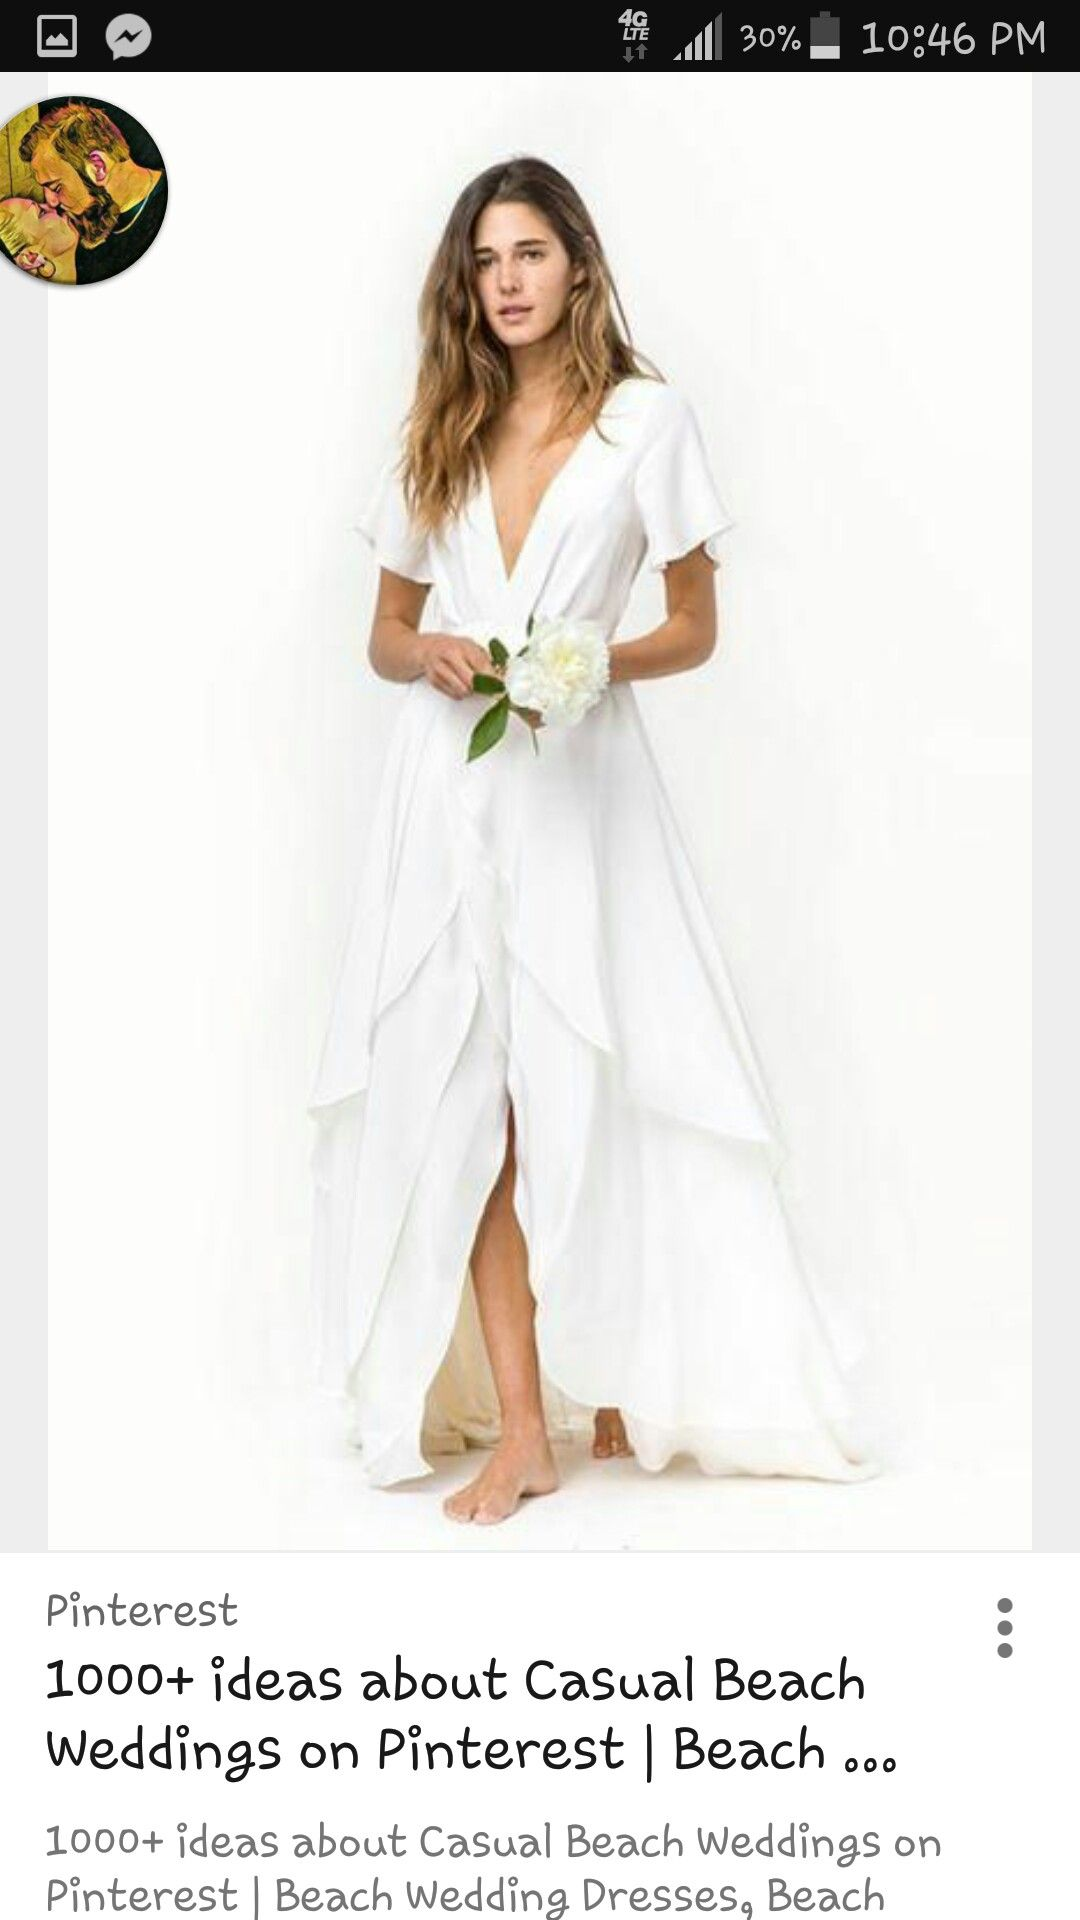 Pin by Danielle Tobias on casual wedding dresses Casual